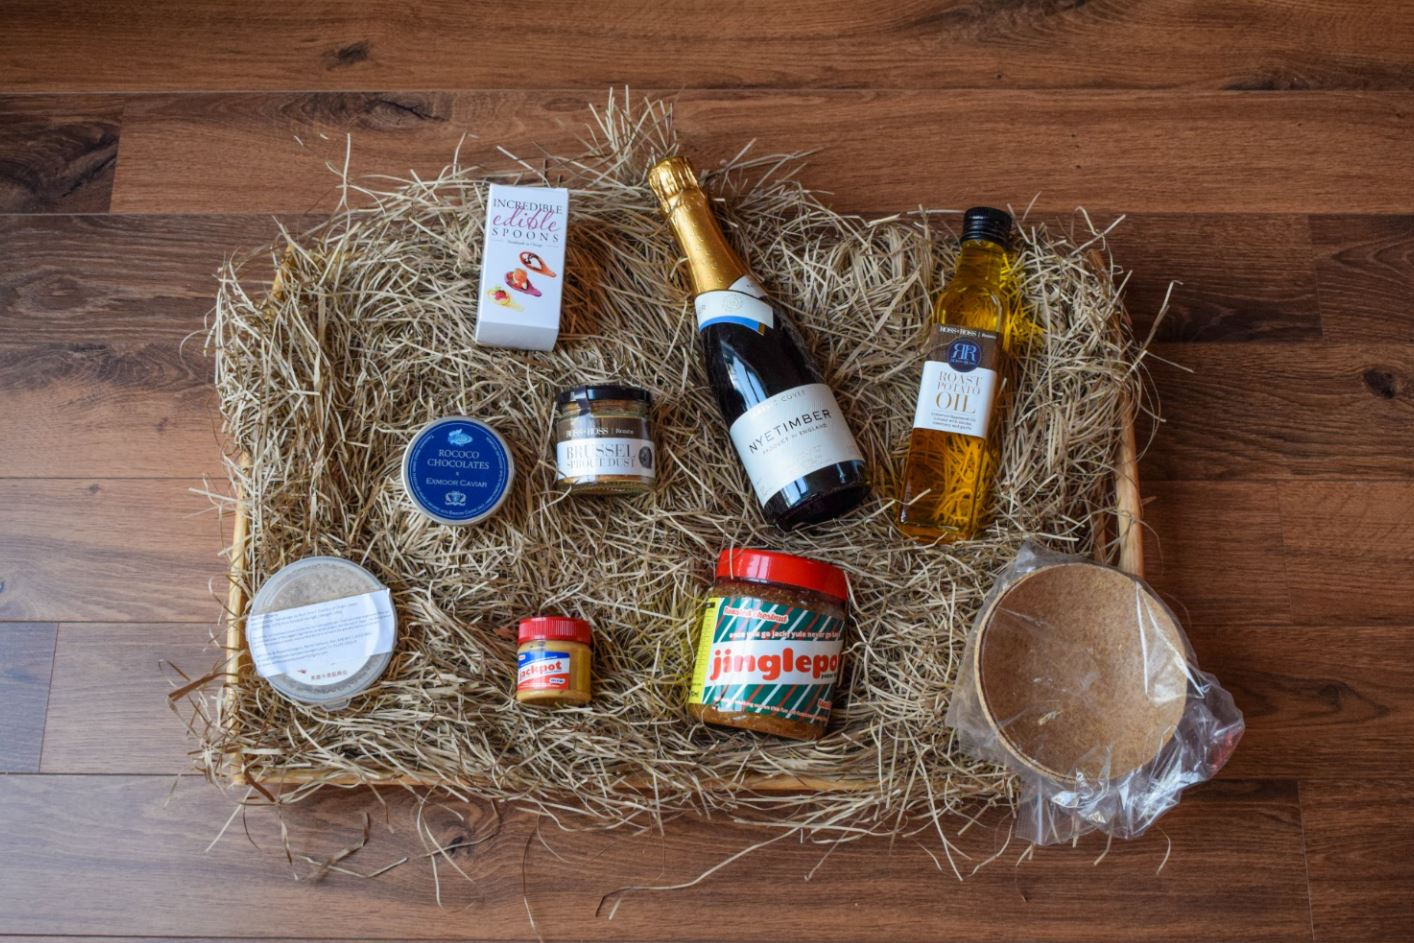 TRIED & TESTED HOLIDAY BOX